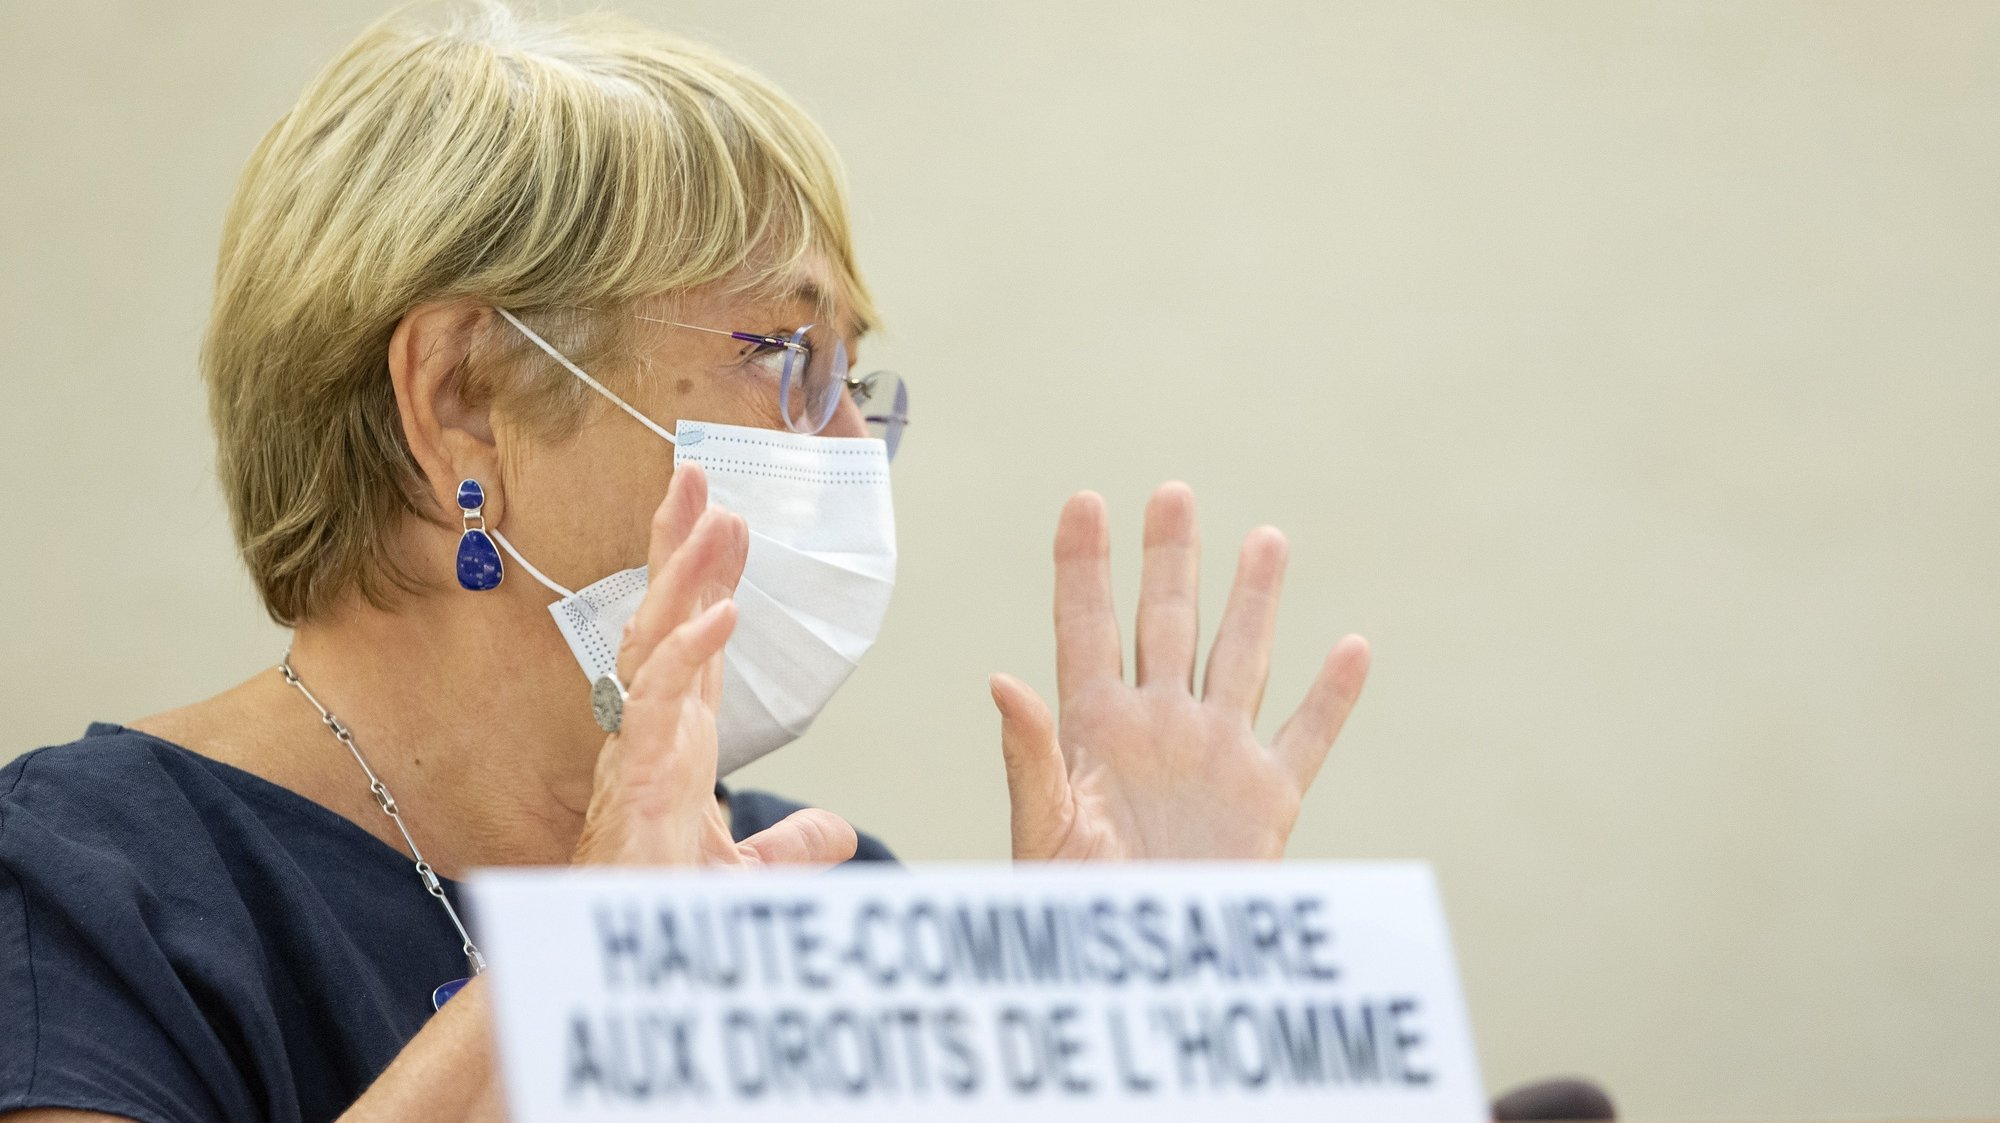 epa09465121 UN High Commissioner for Human Rights, Chilean Michelle Bachelet, gestures during the 48th session of the Human Rights Council, at the European headquarters of the United Nation, in Geneva, Switzerland, 13 September 2021.  EPA/SALVATORE DI NOLFI